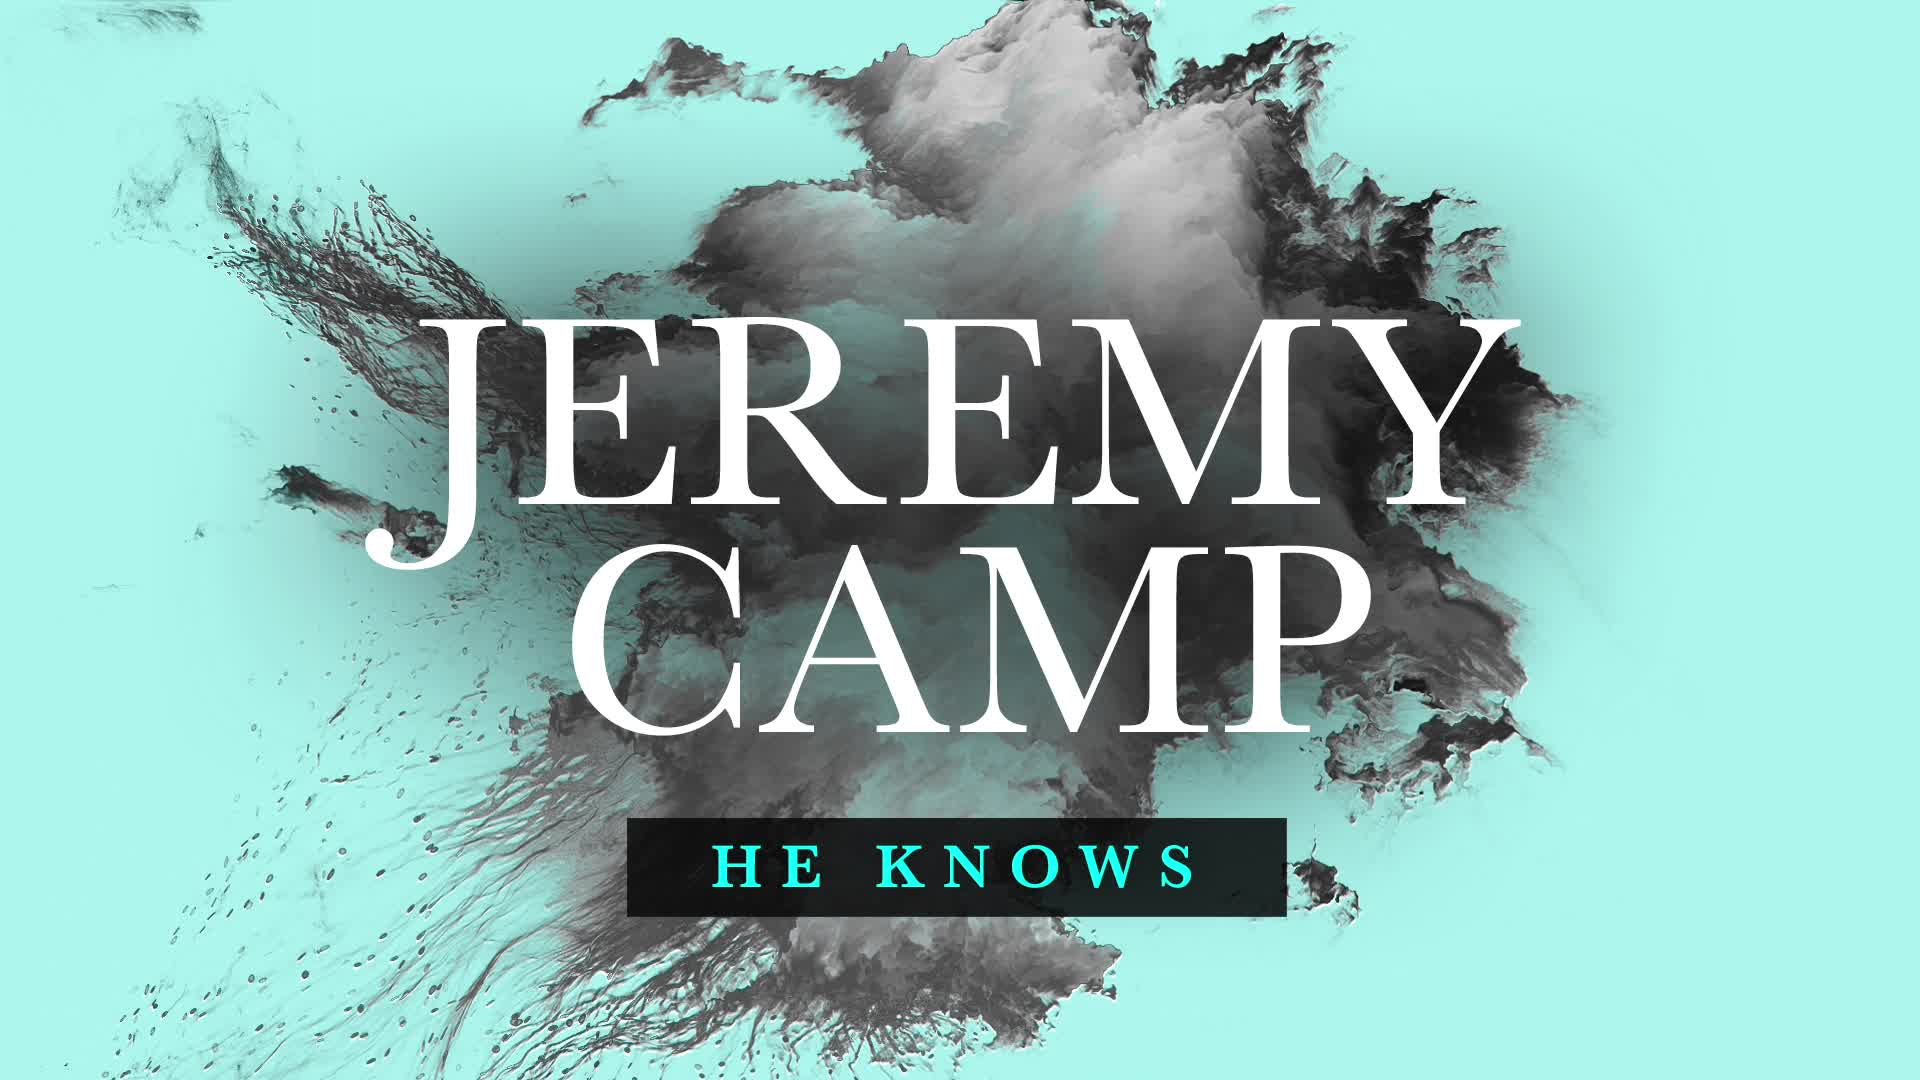 Jeremy Camp - He Knows